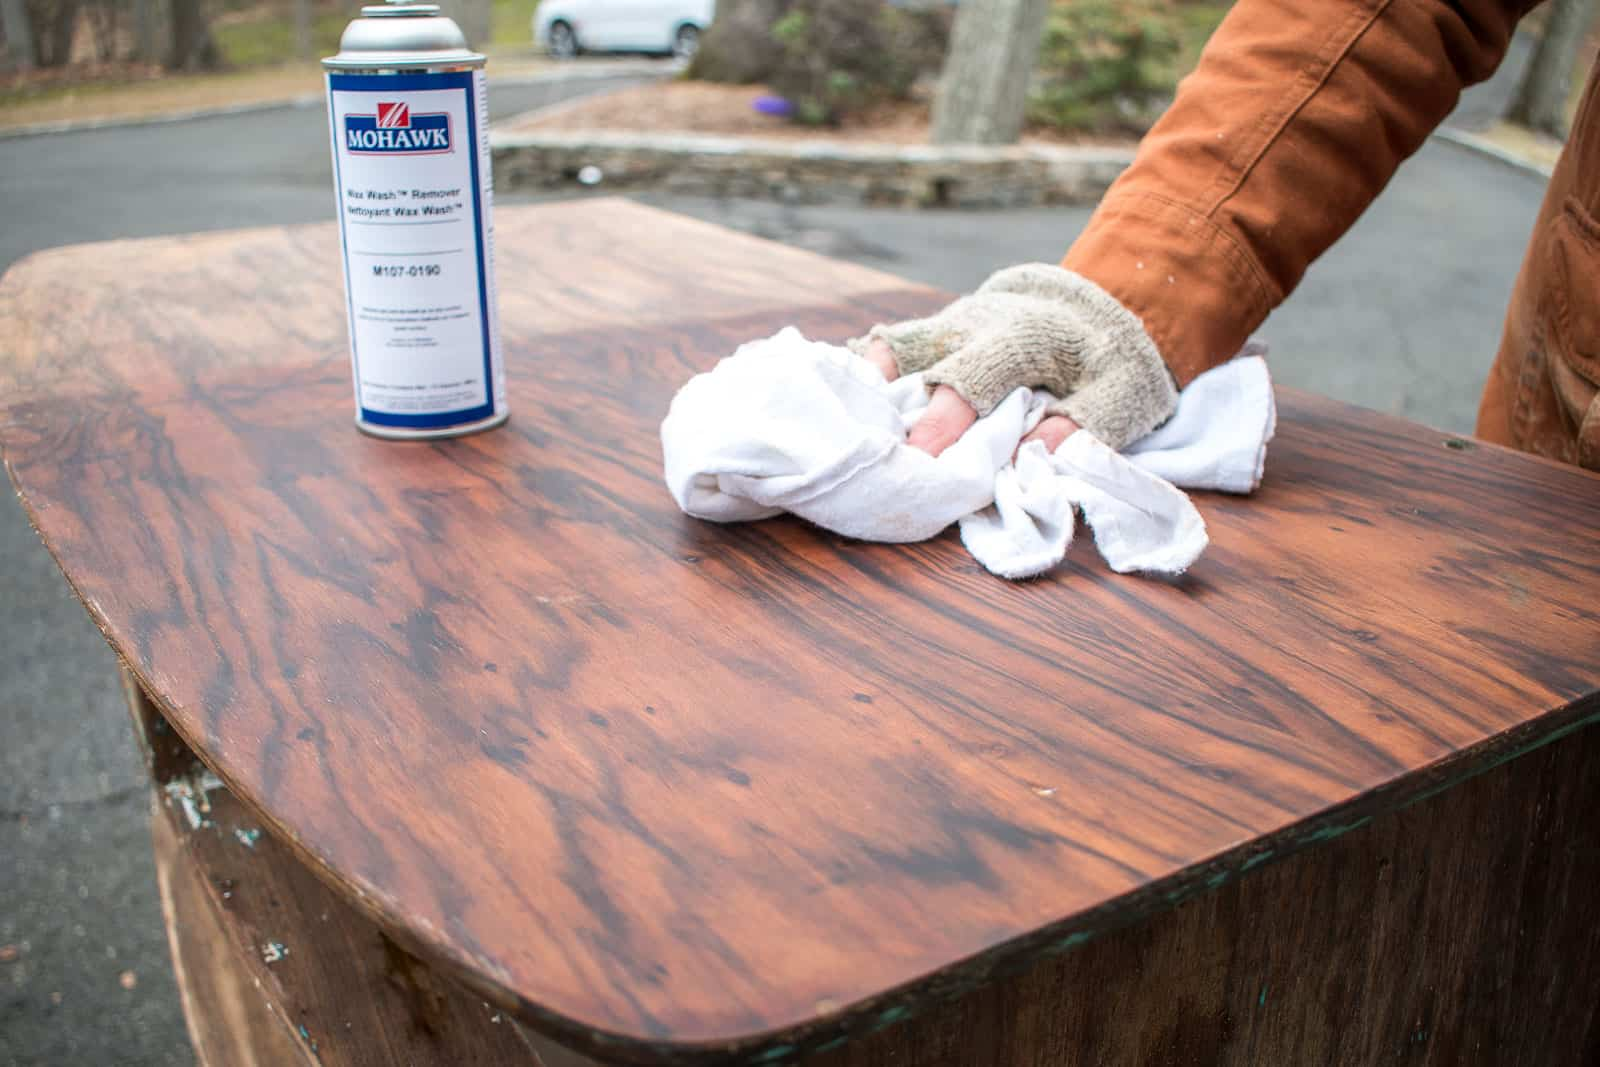 cleaning the wood with wax wash remover